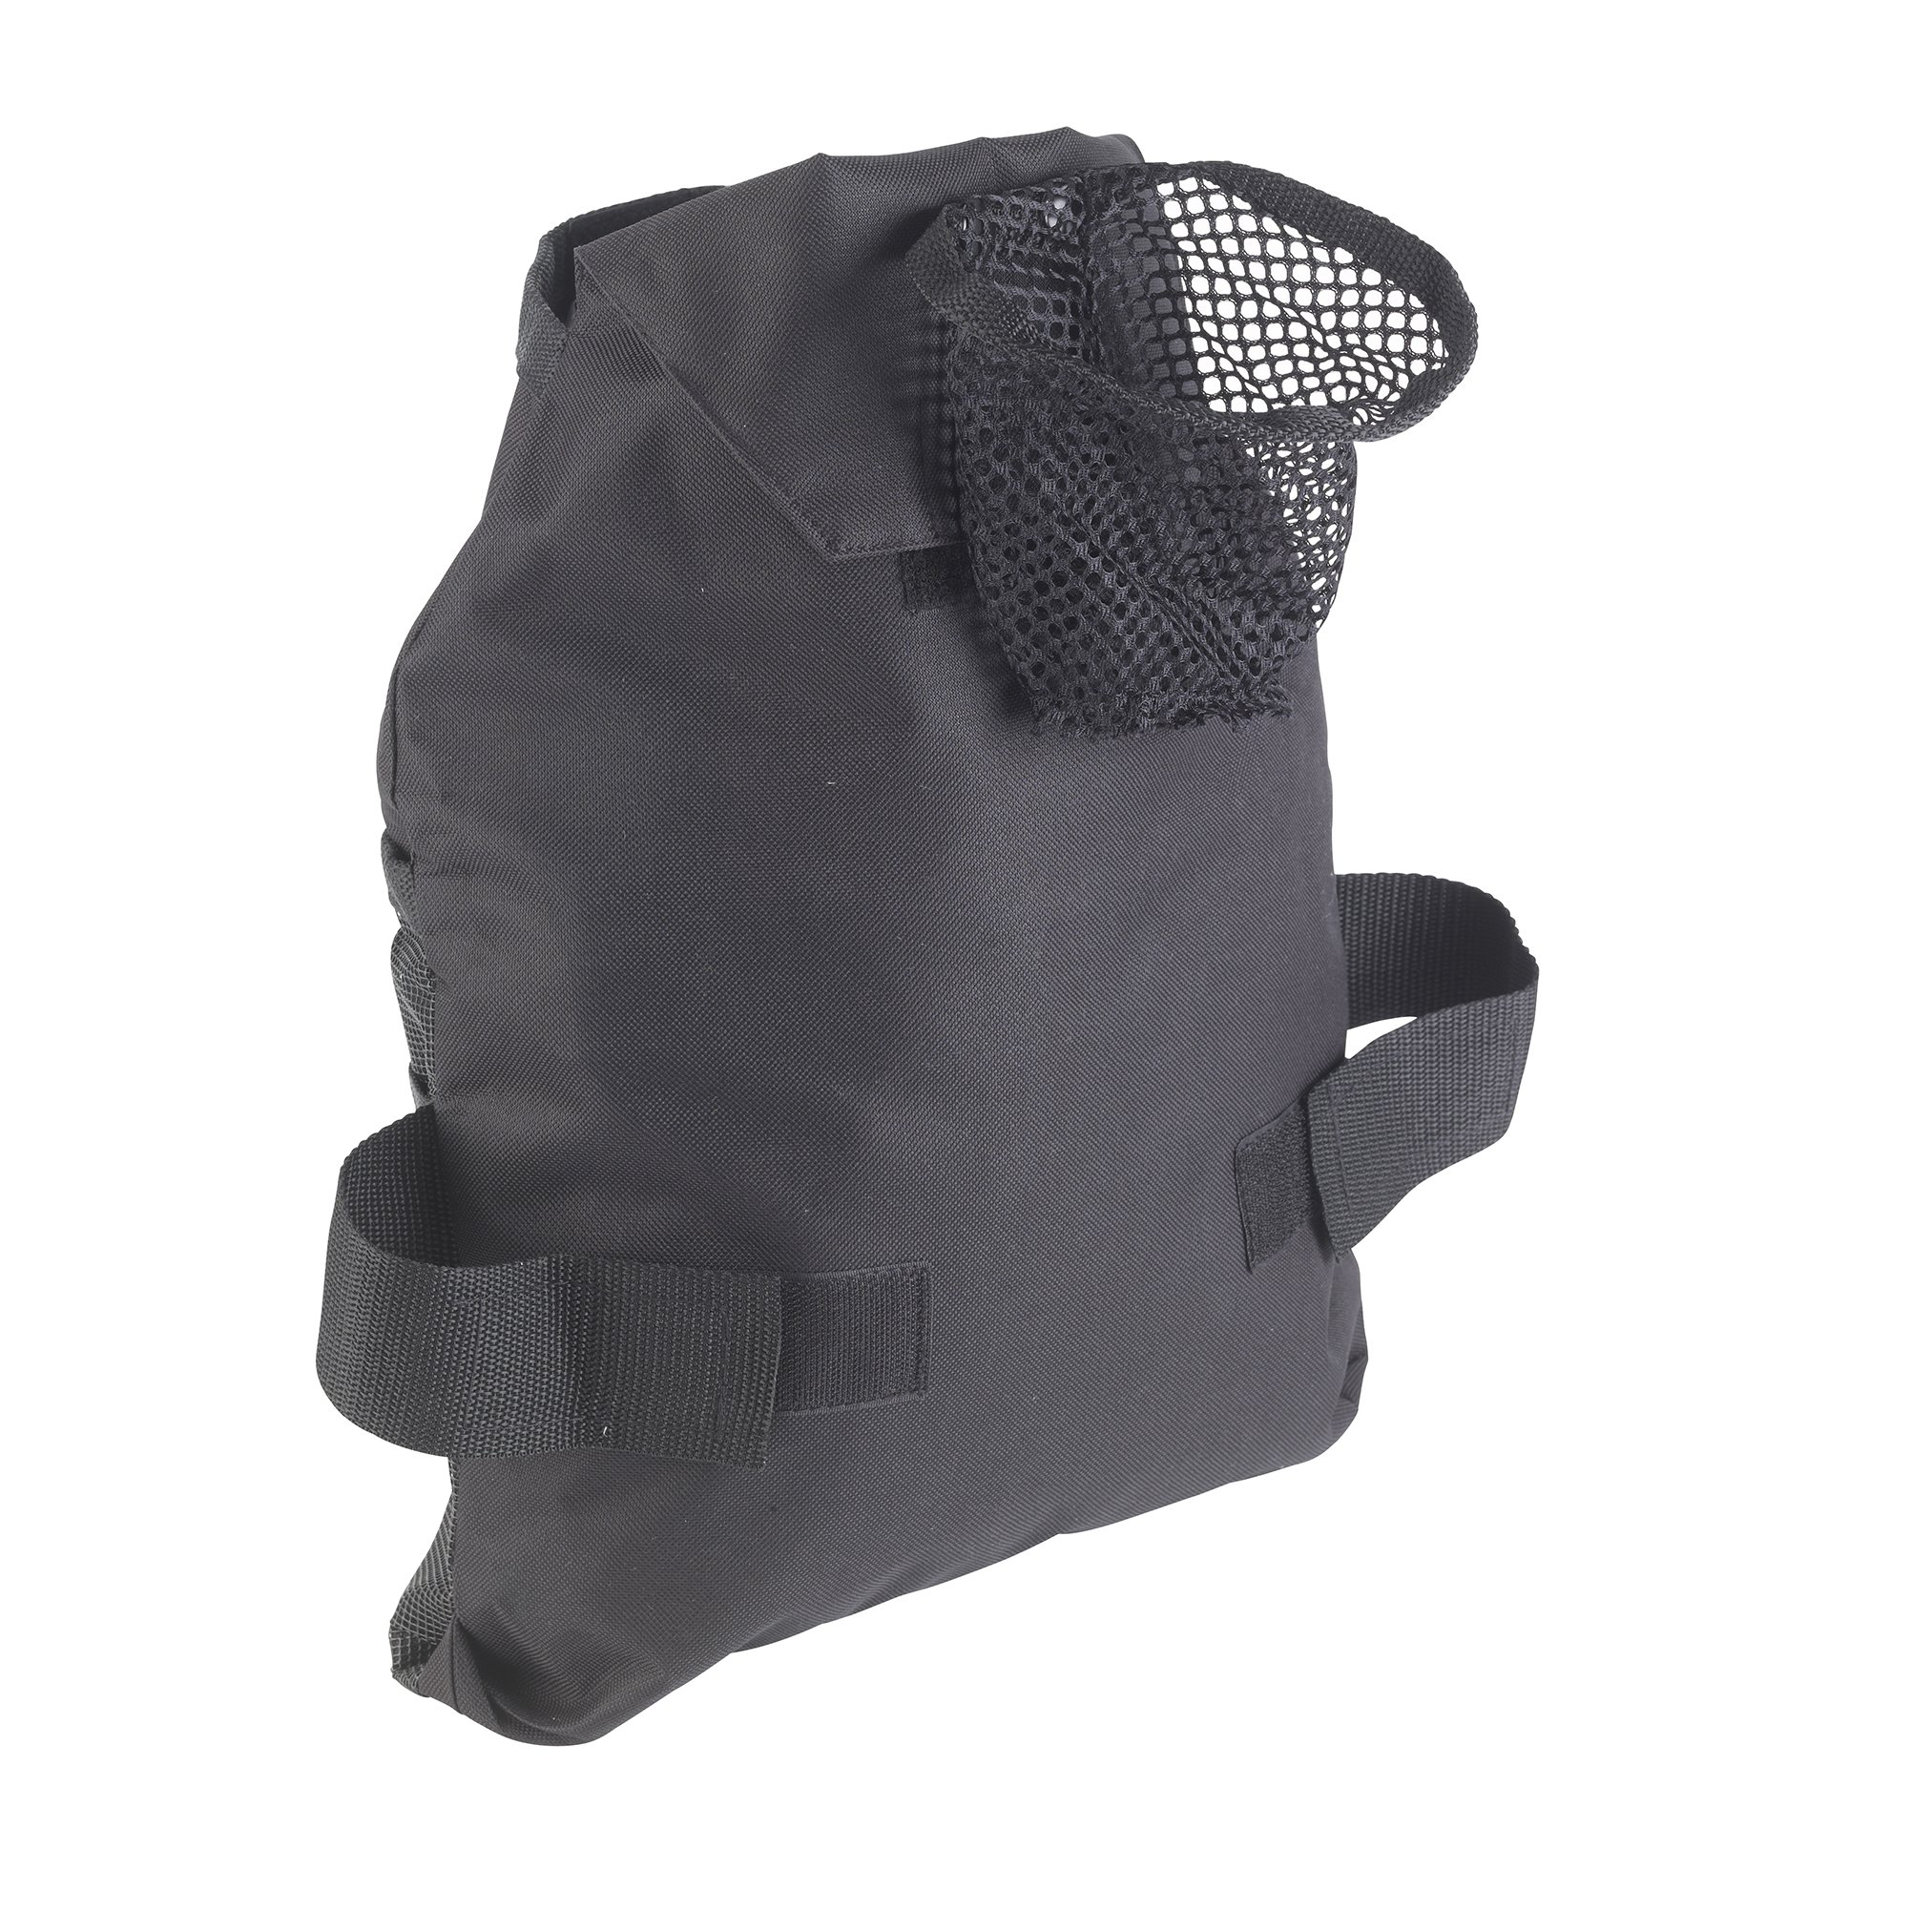 Drive Medical Deluxe Side Walker Carry Pouch, Black by Drive Medical (Image #3)